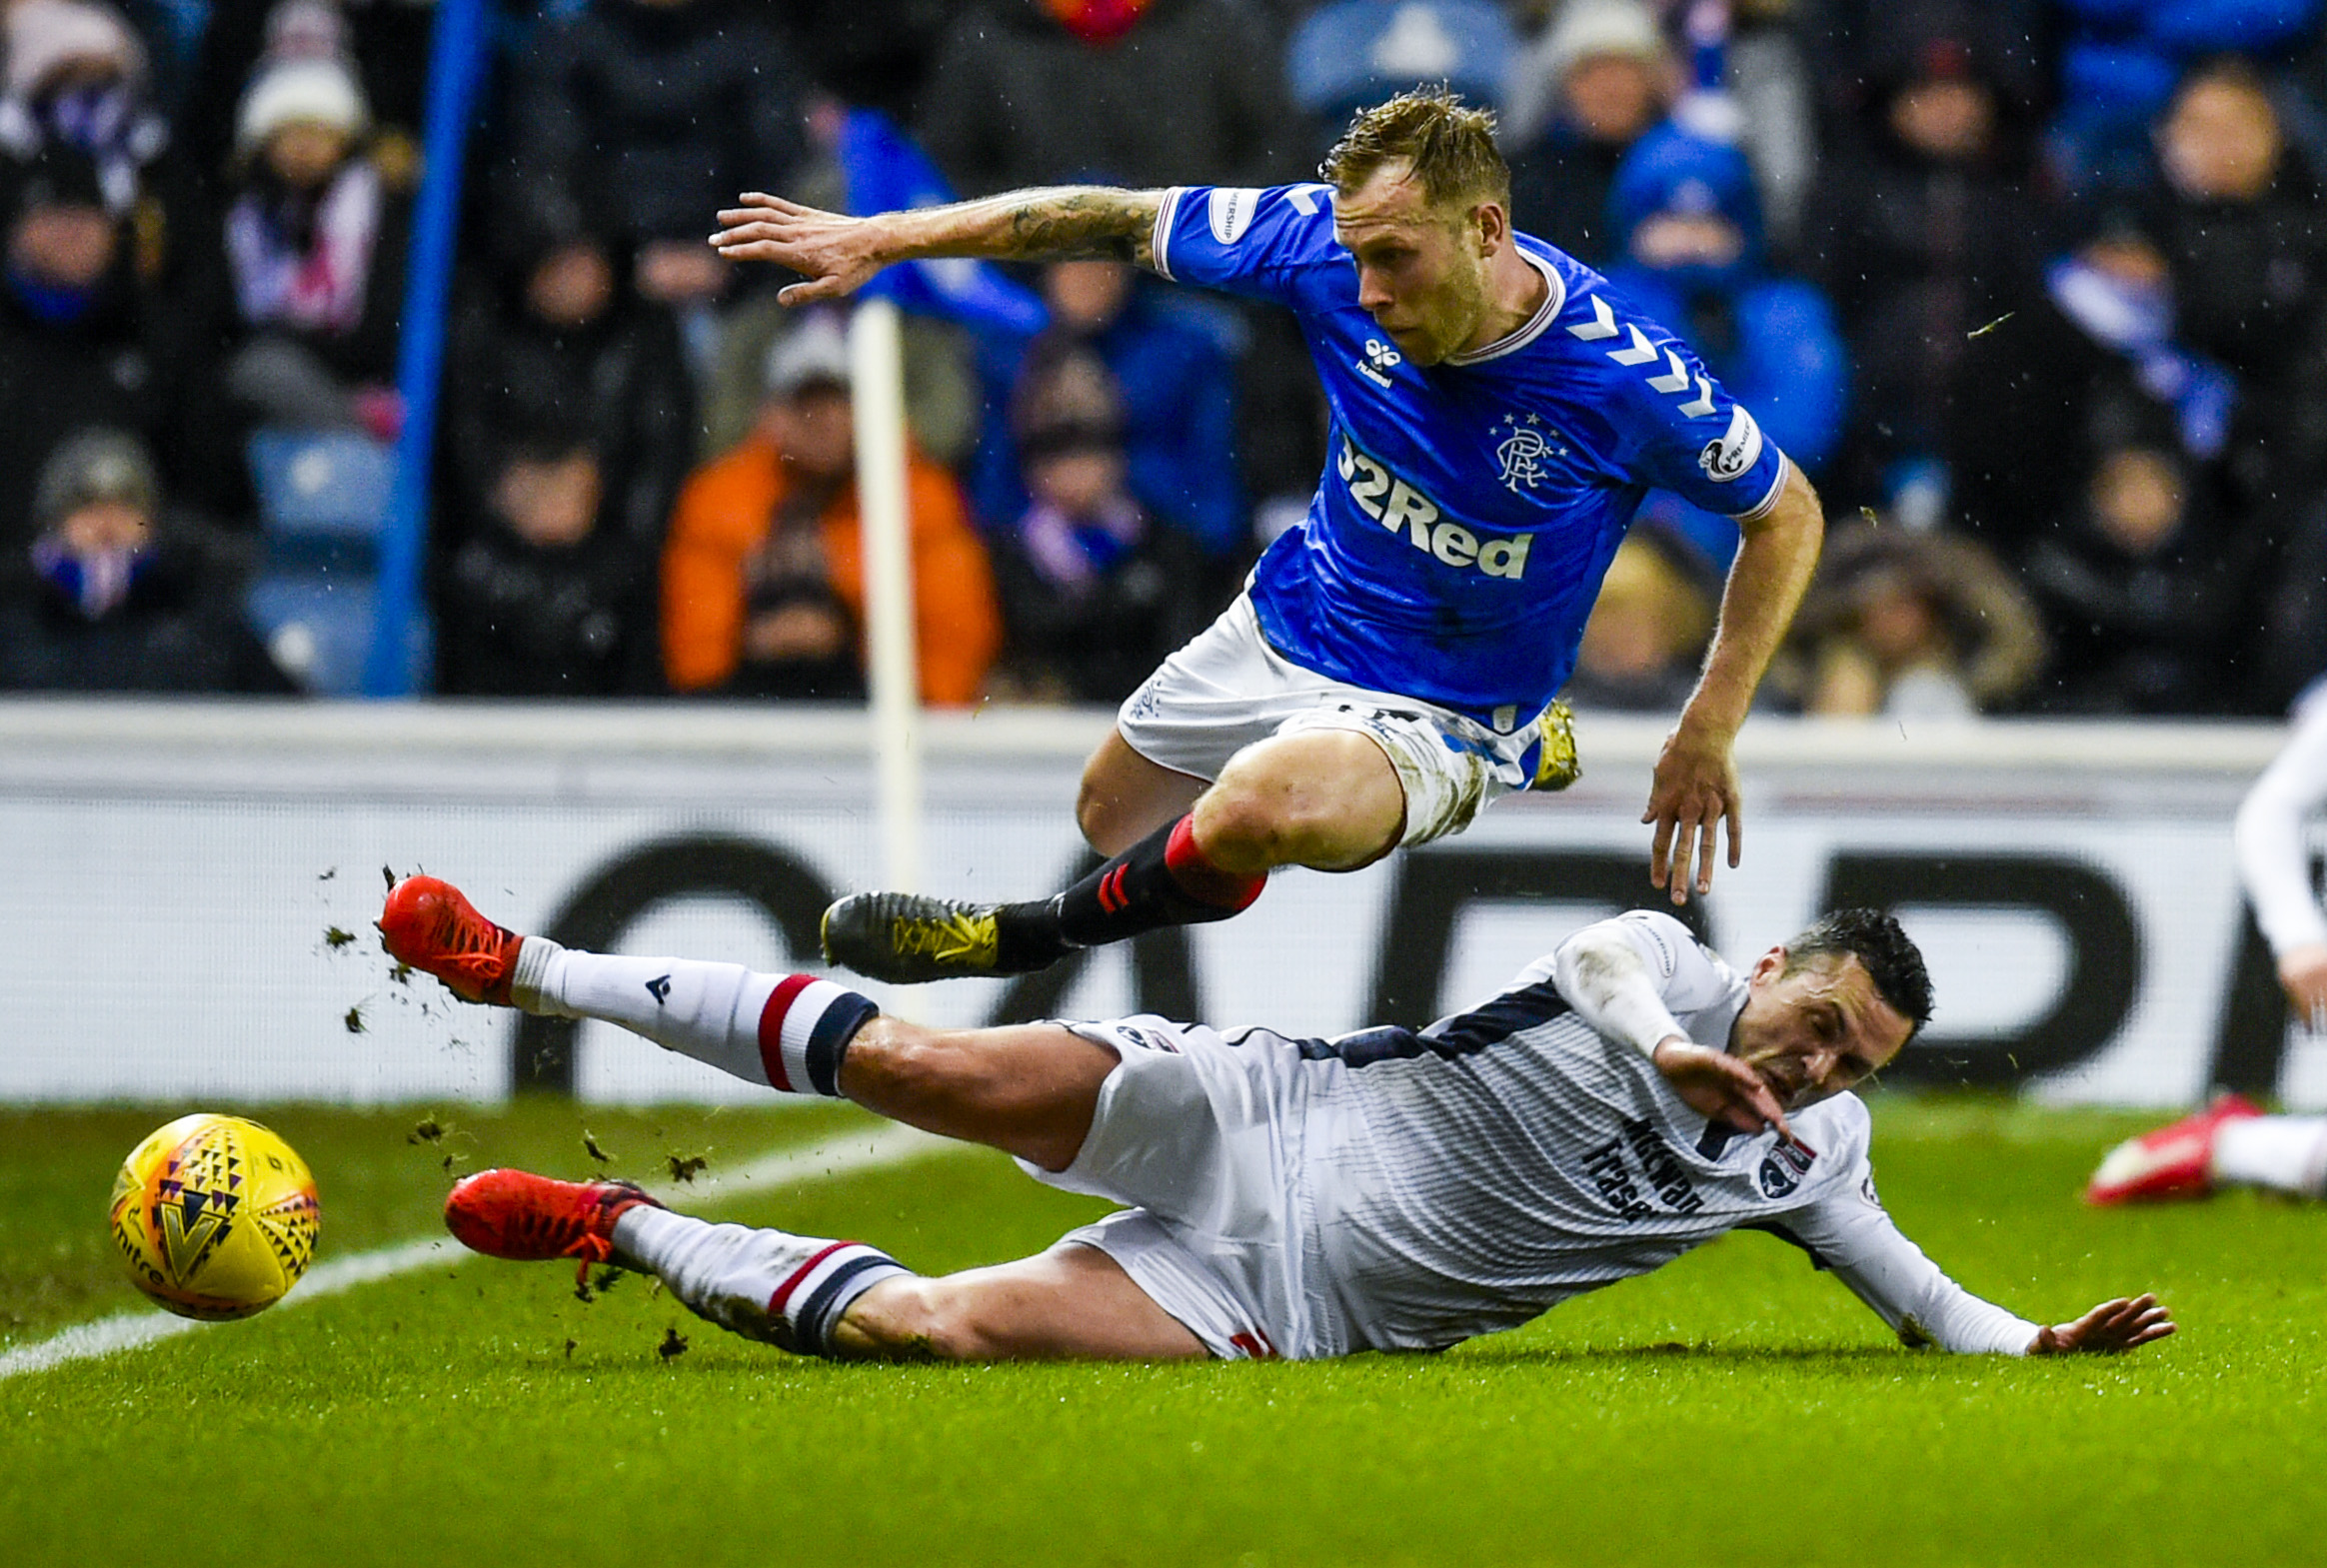 Ross County midfielder Don Cowie in action against Rangers.